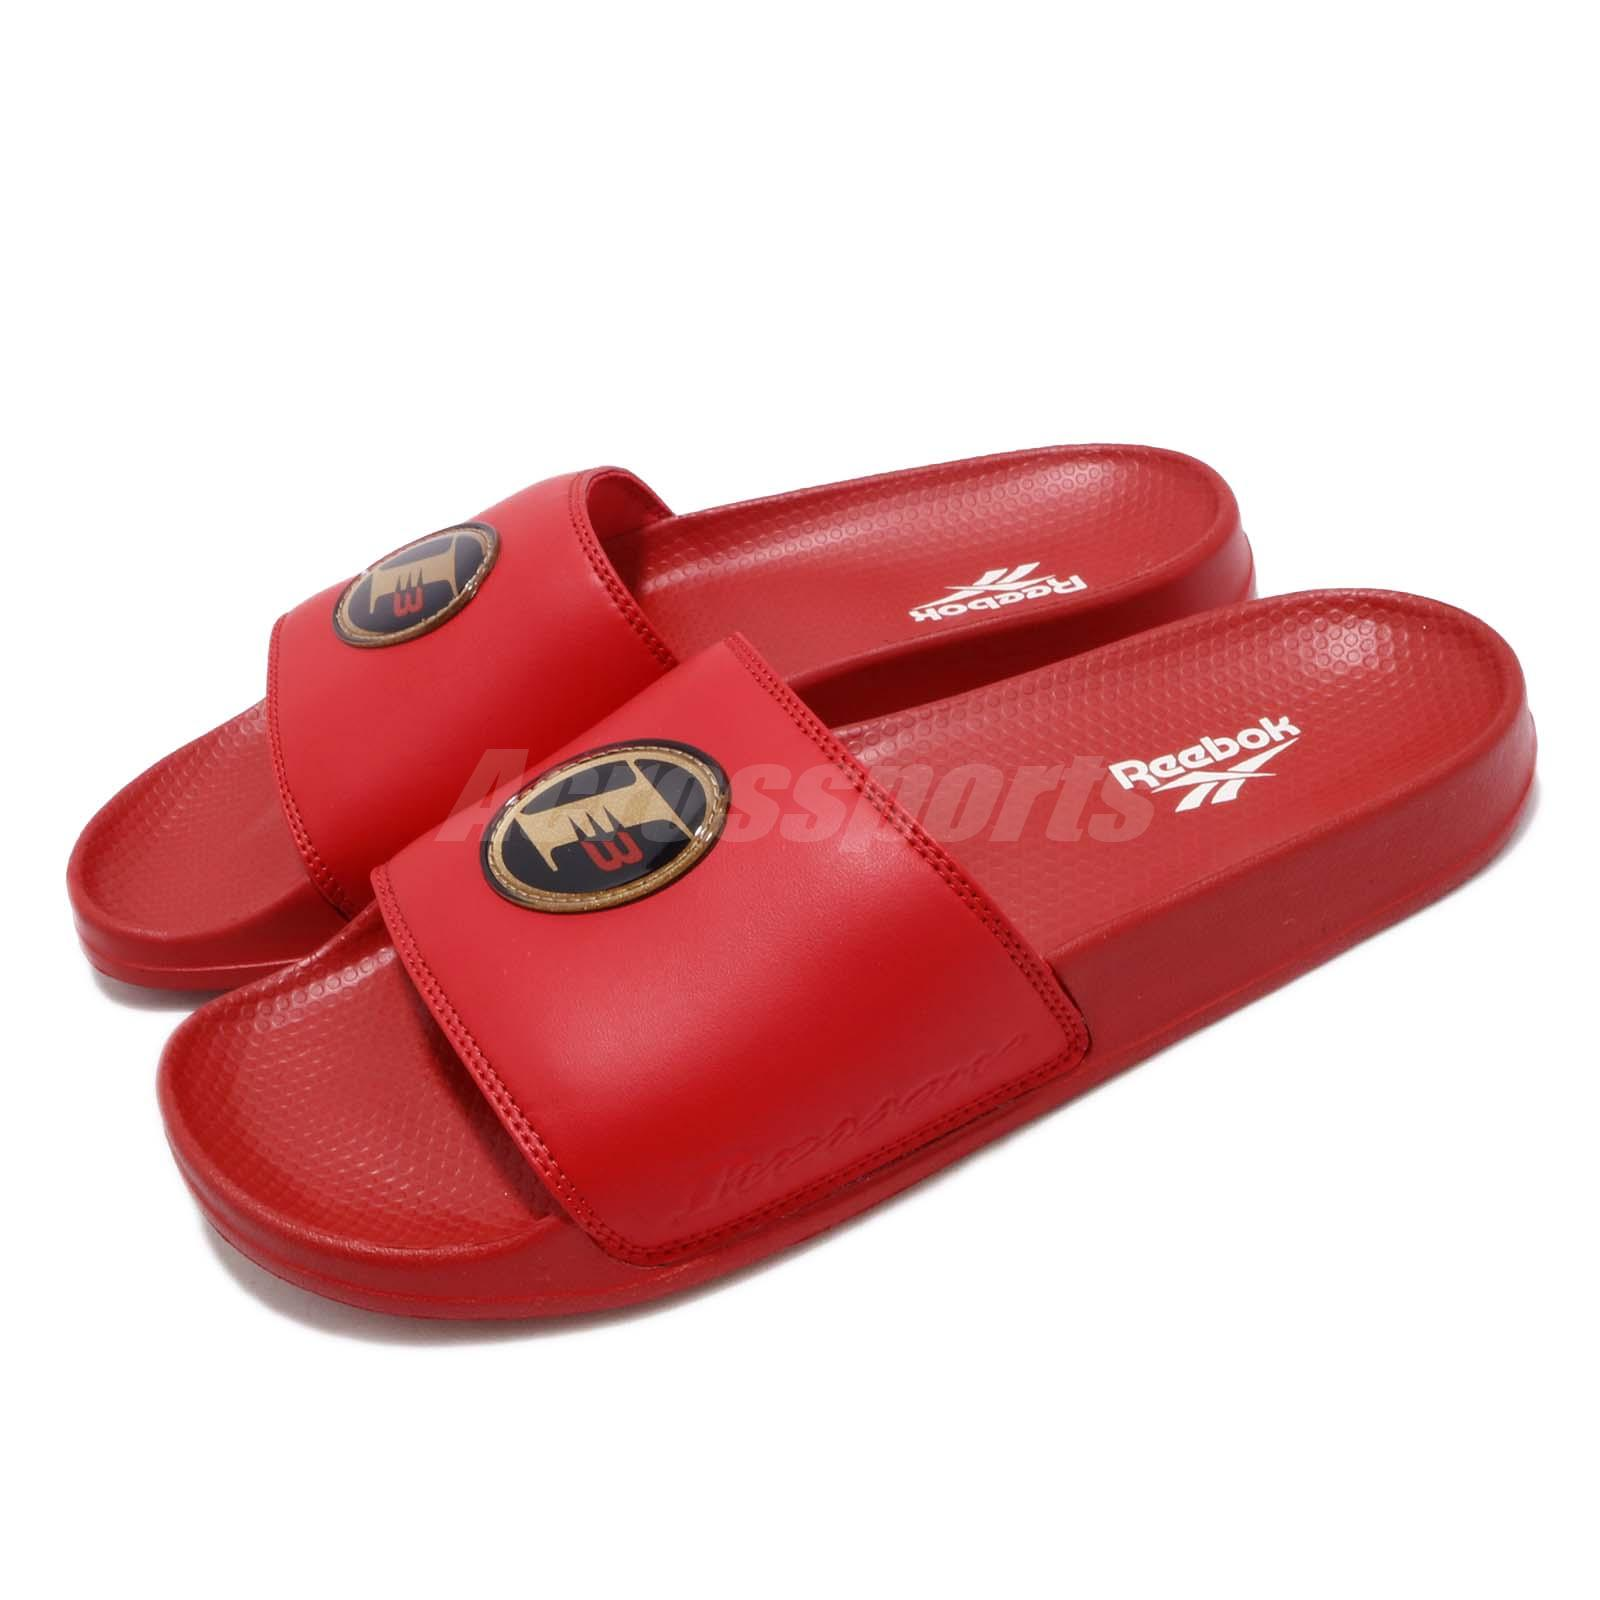 be048682d Details about Reebok Classic Slide AI Allen Iverson I3 Red Men Sports  Sandals Slippers CN6738